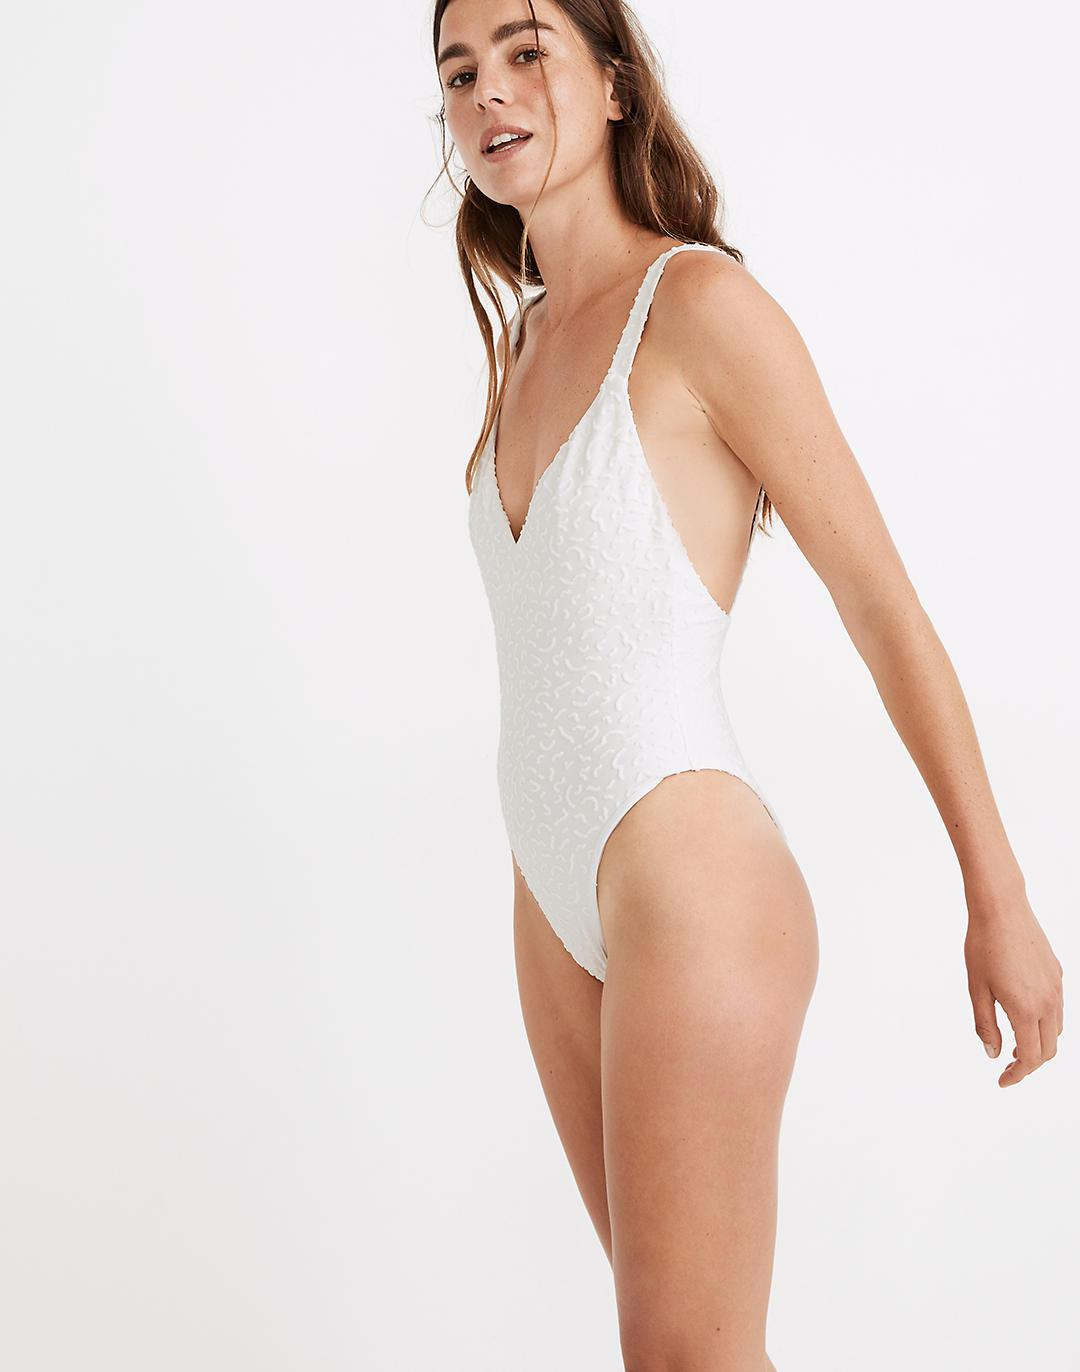 Madewell Maillot One-Piece Swimsuit in Bold Squiggles Jacquard 1